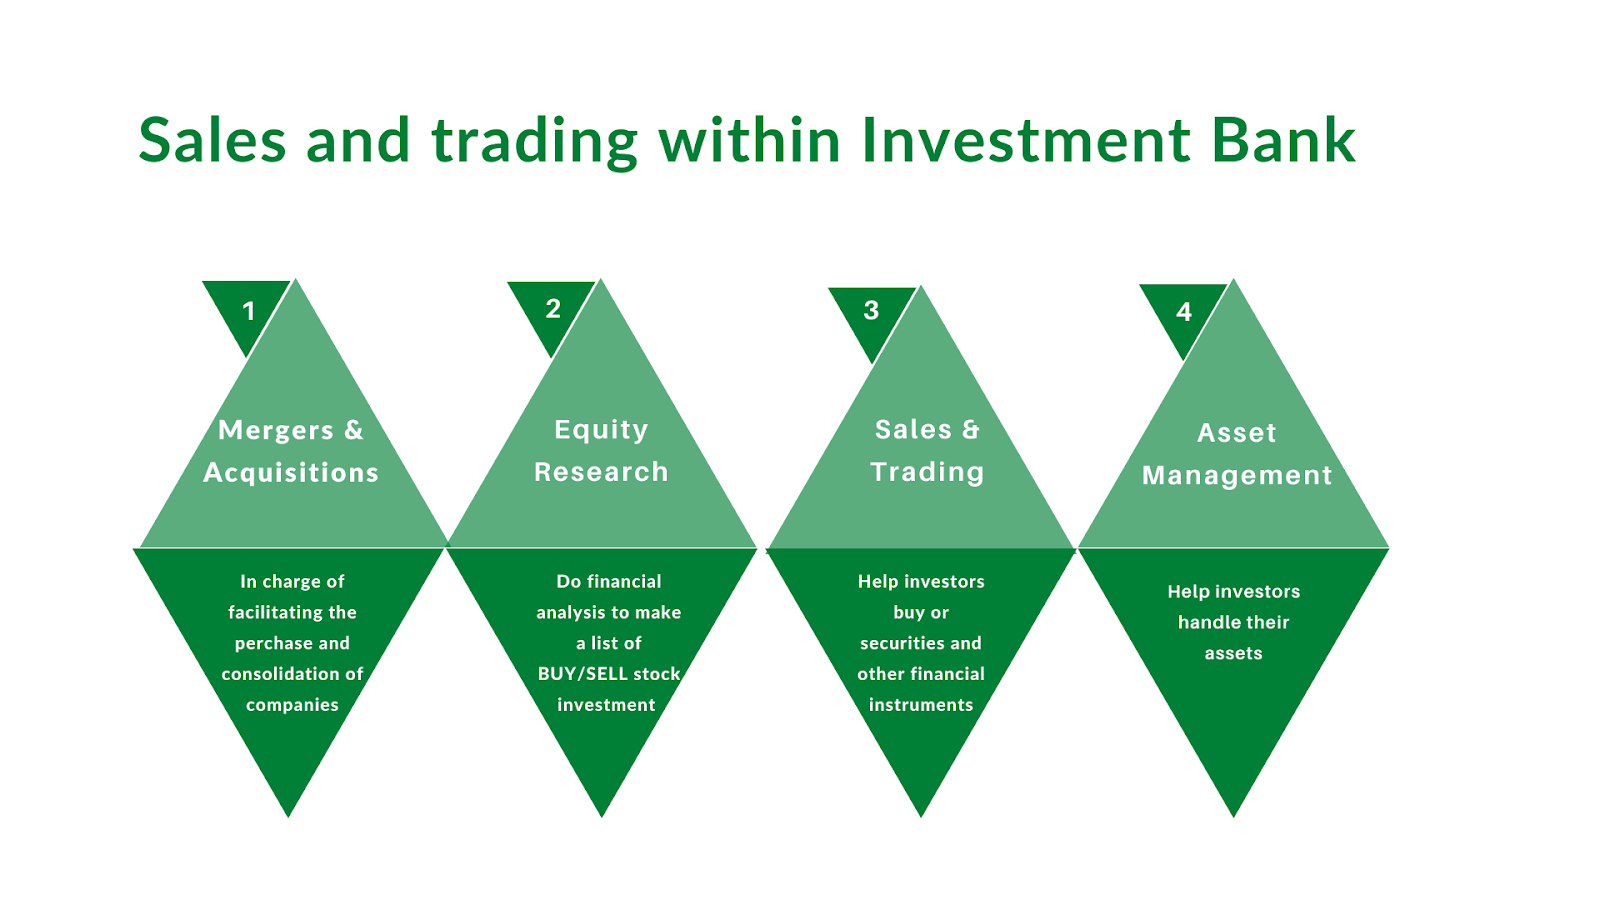 Sales and Trading